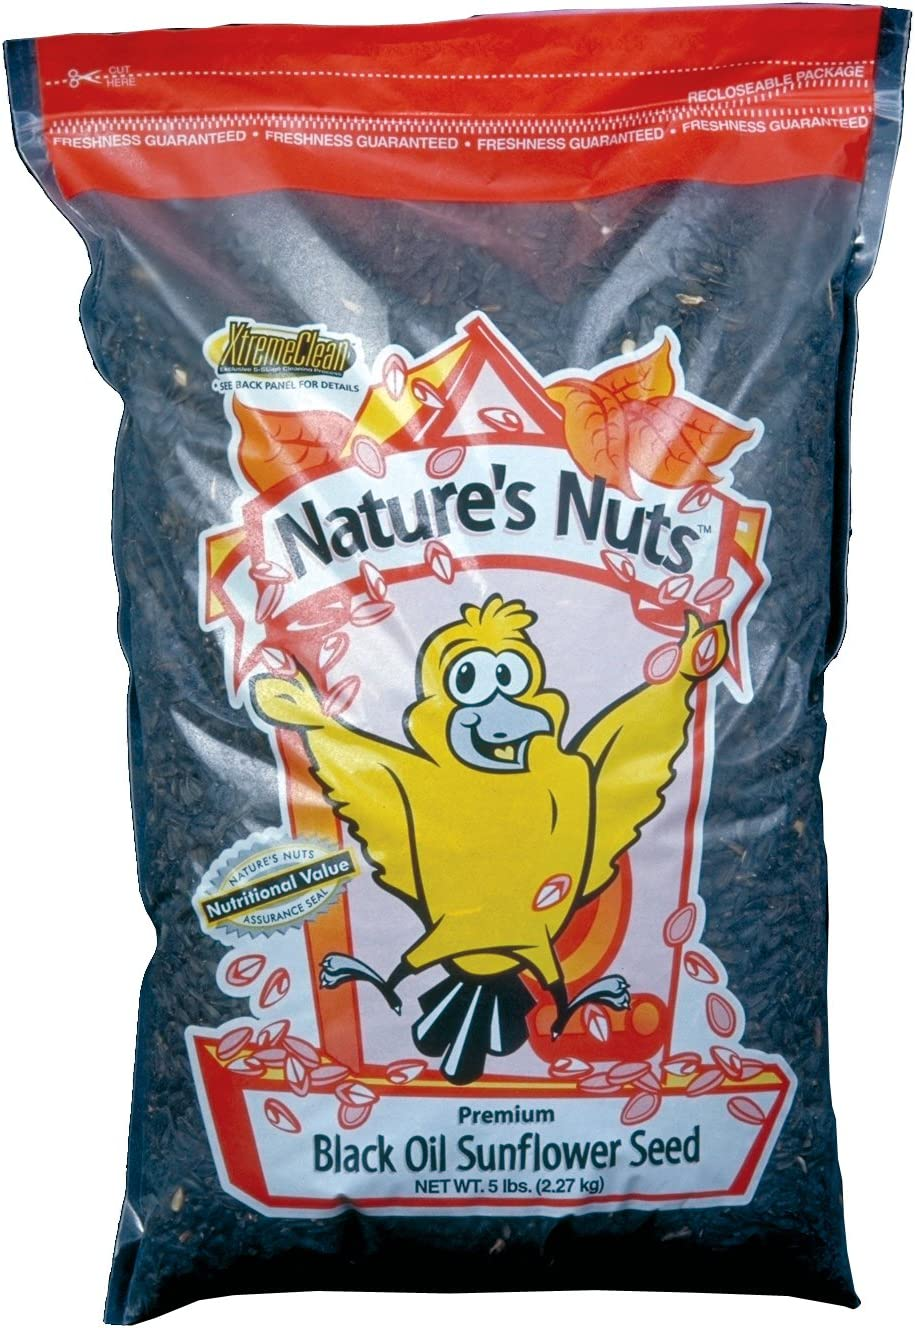 Natures Nuts 00035 Chuckanut Products 20 Lbs Premium Black Oil Sunflower